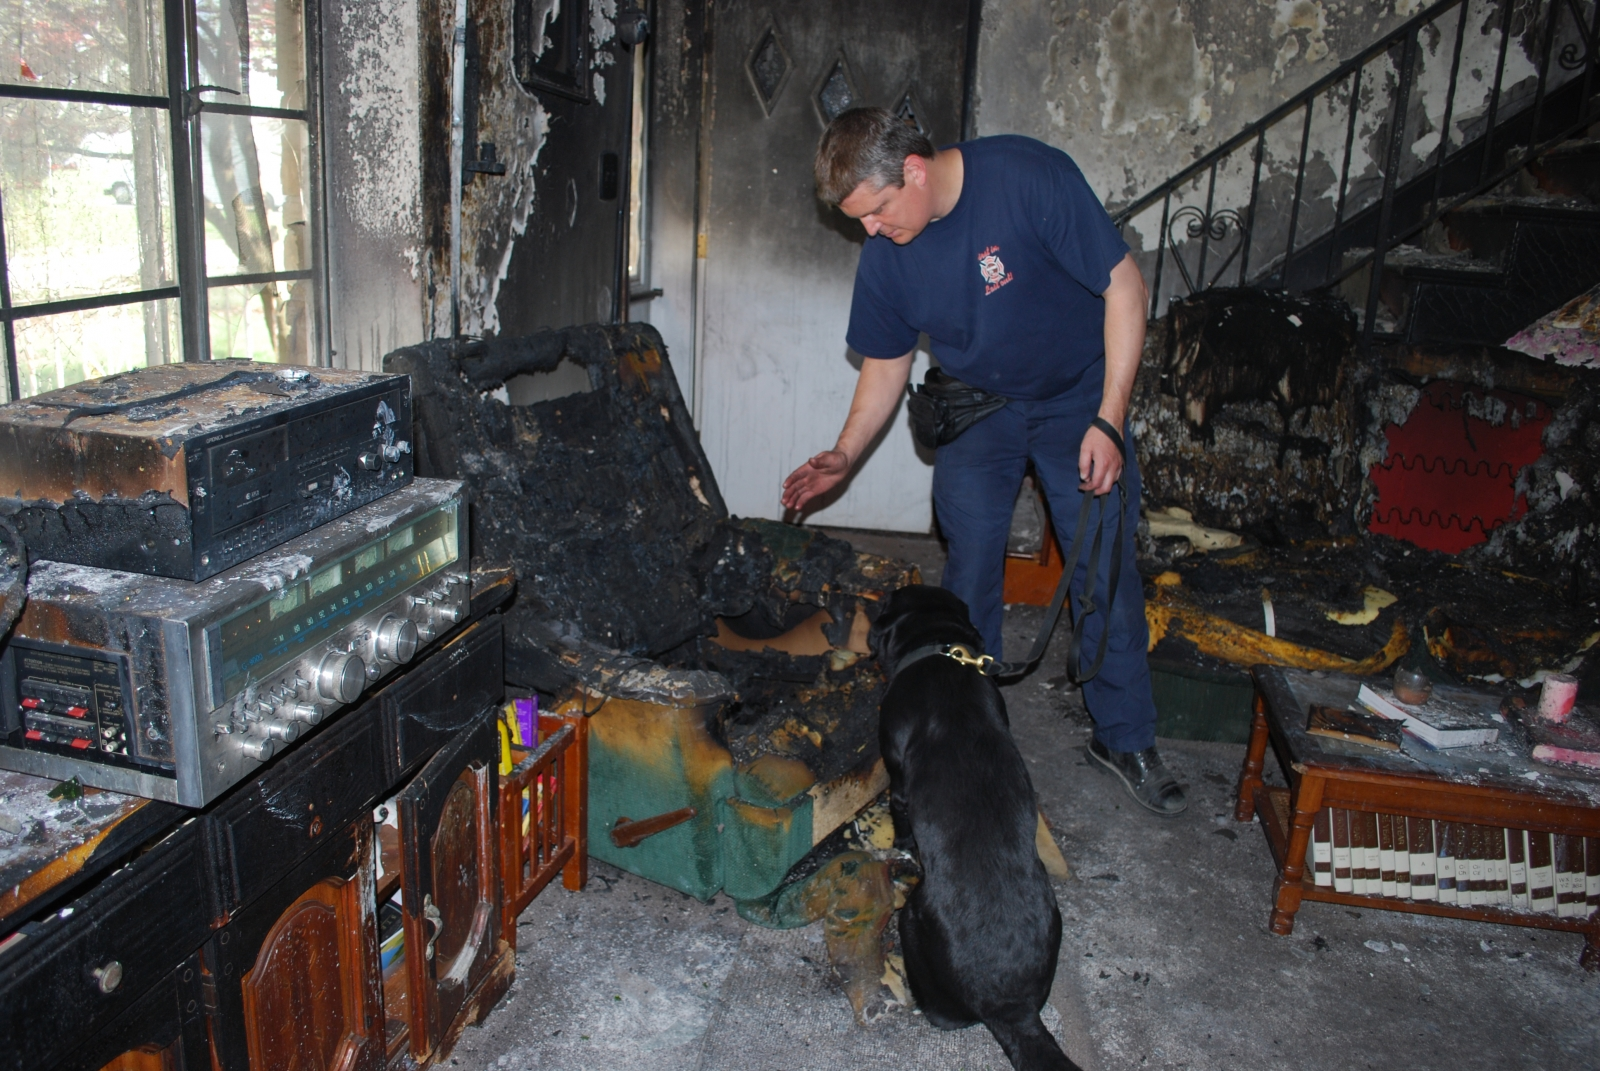 A dog trained to detect arson